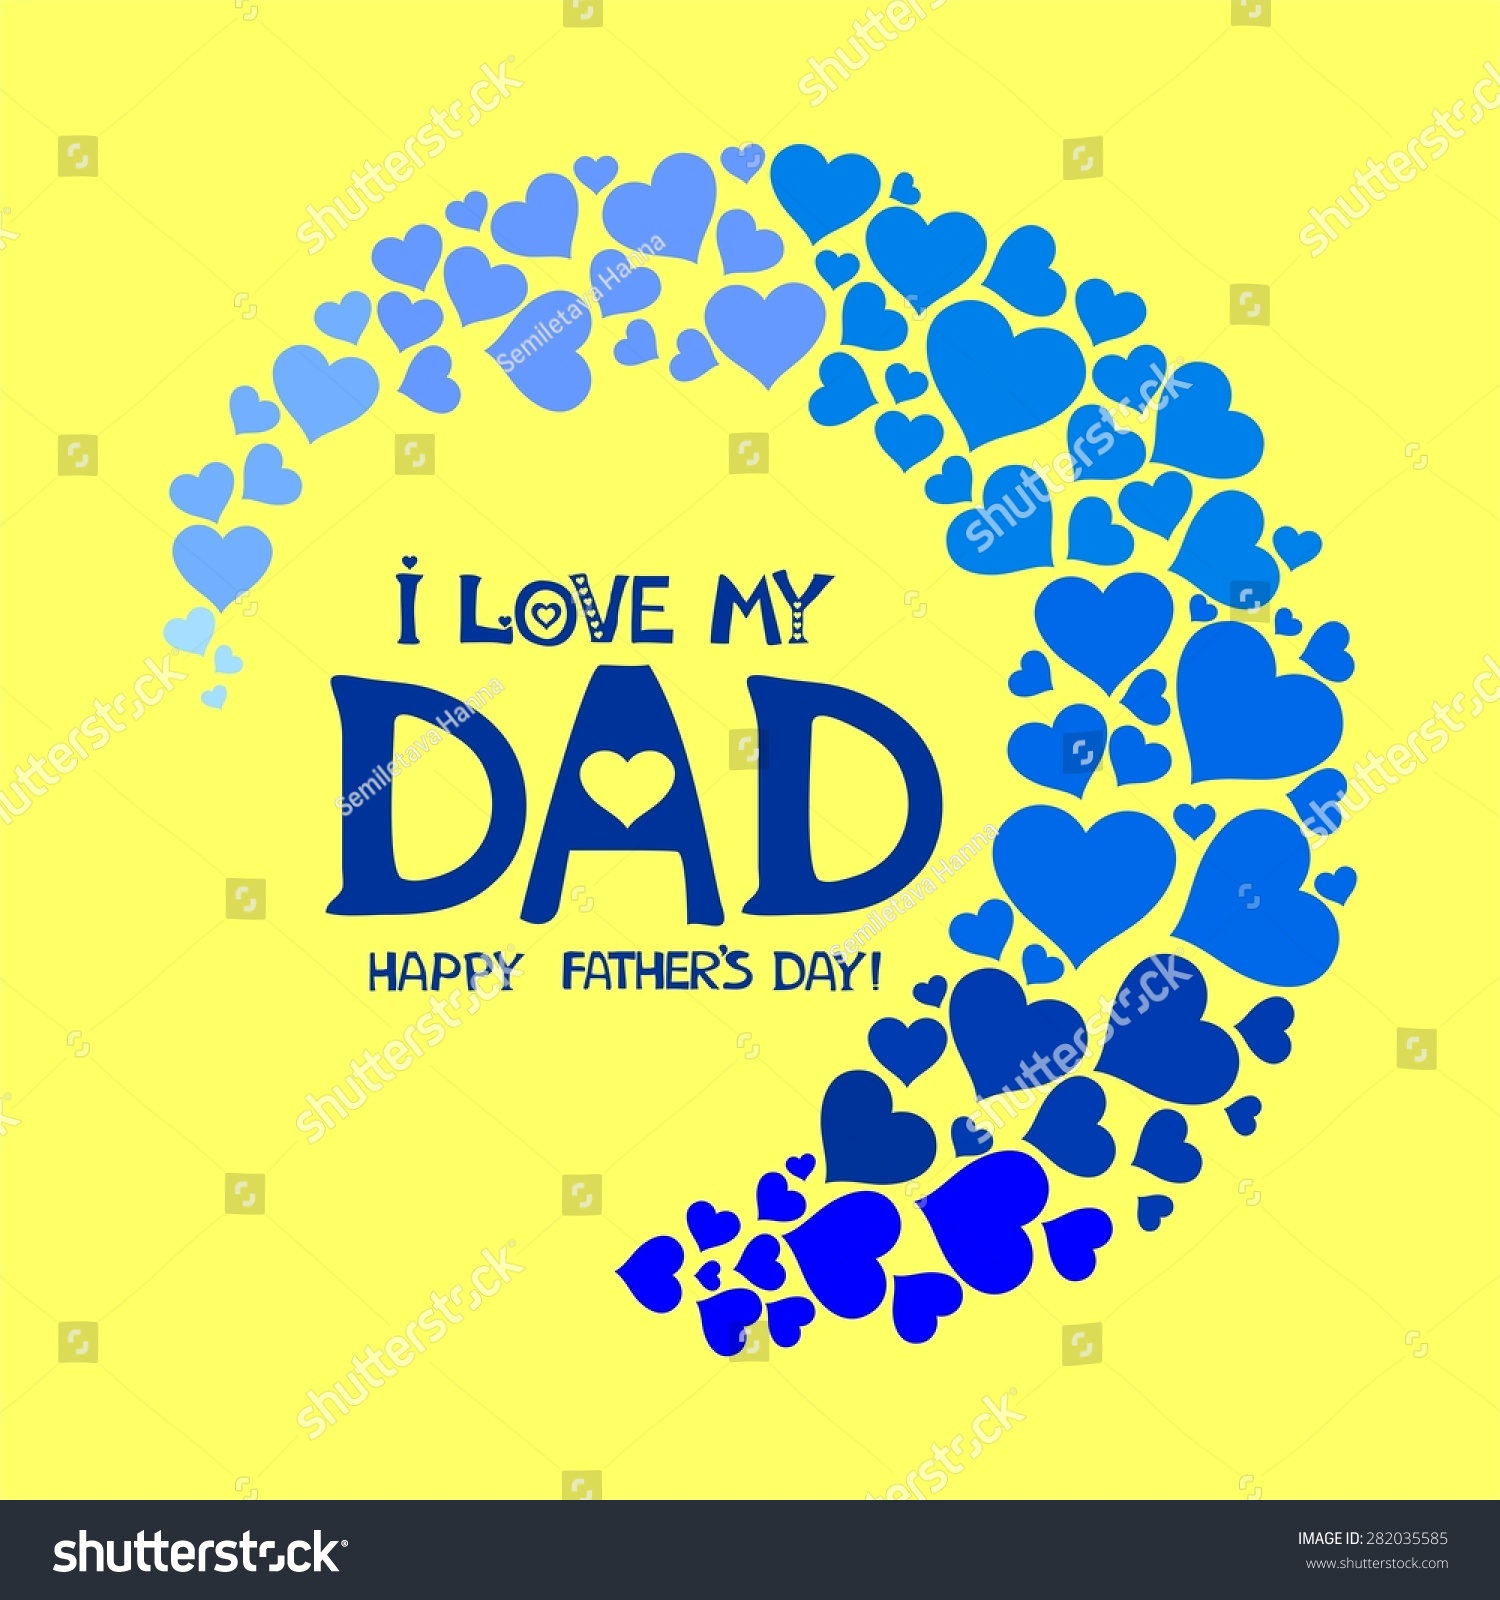 Fathers Love: I Love My Dad. Happy Fathers Day Card. Illustration